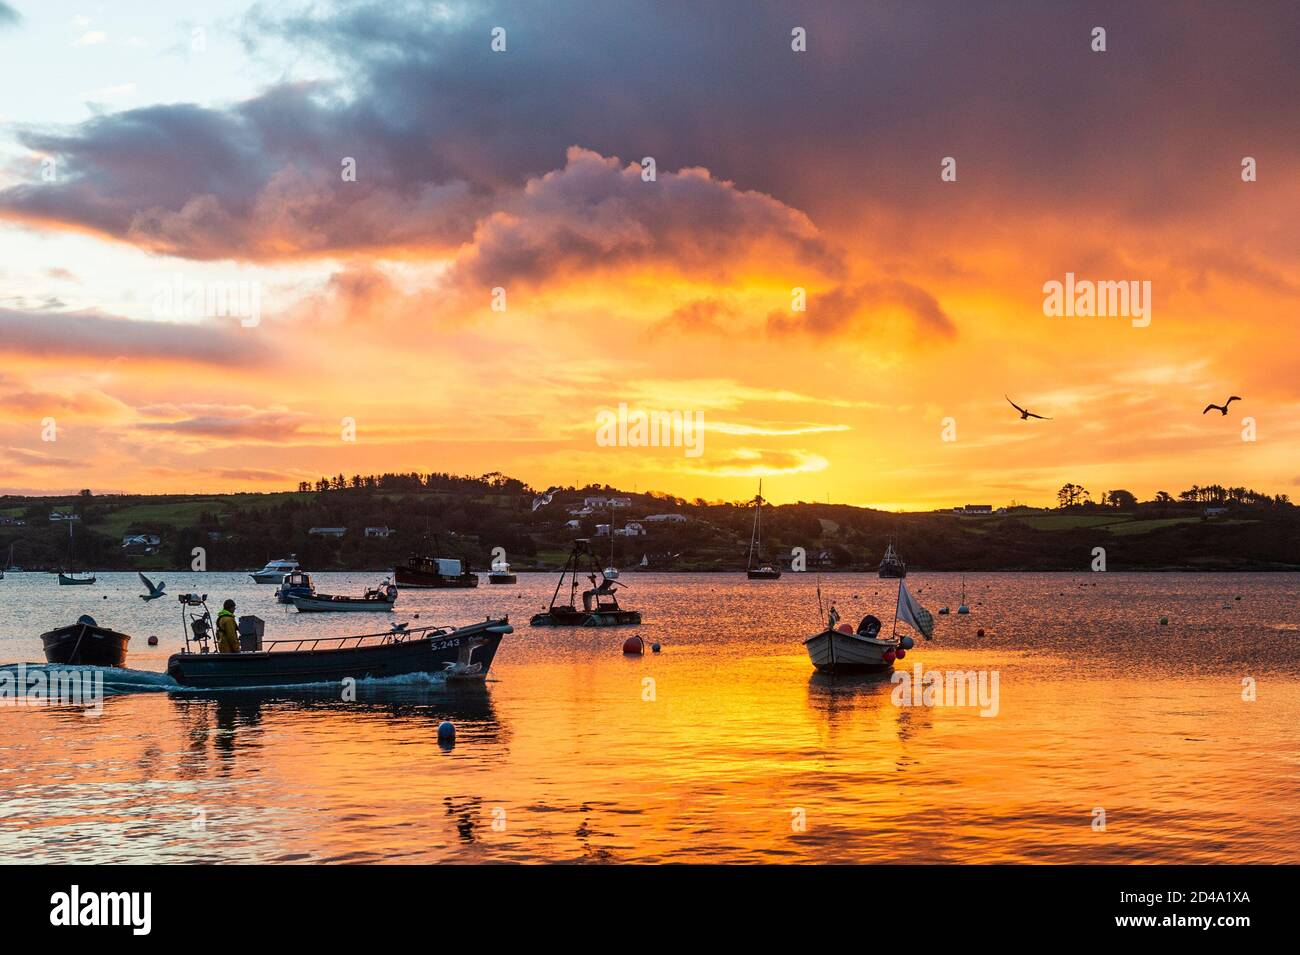 schull-west-cork-ireland-9th-oct-2020-a-fisherman-pilots-his-boat-for-a-trip-to-pull-his-crab-pots-in-schull-harbour-as-the-sun-rises-over-the-water-credit-ag-newsalamy-live-news-2D4A1XA.jpg